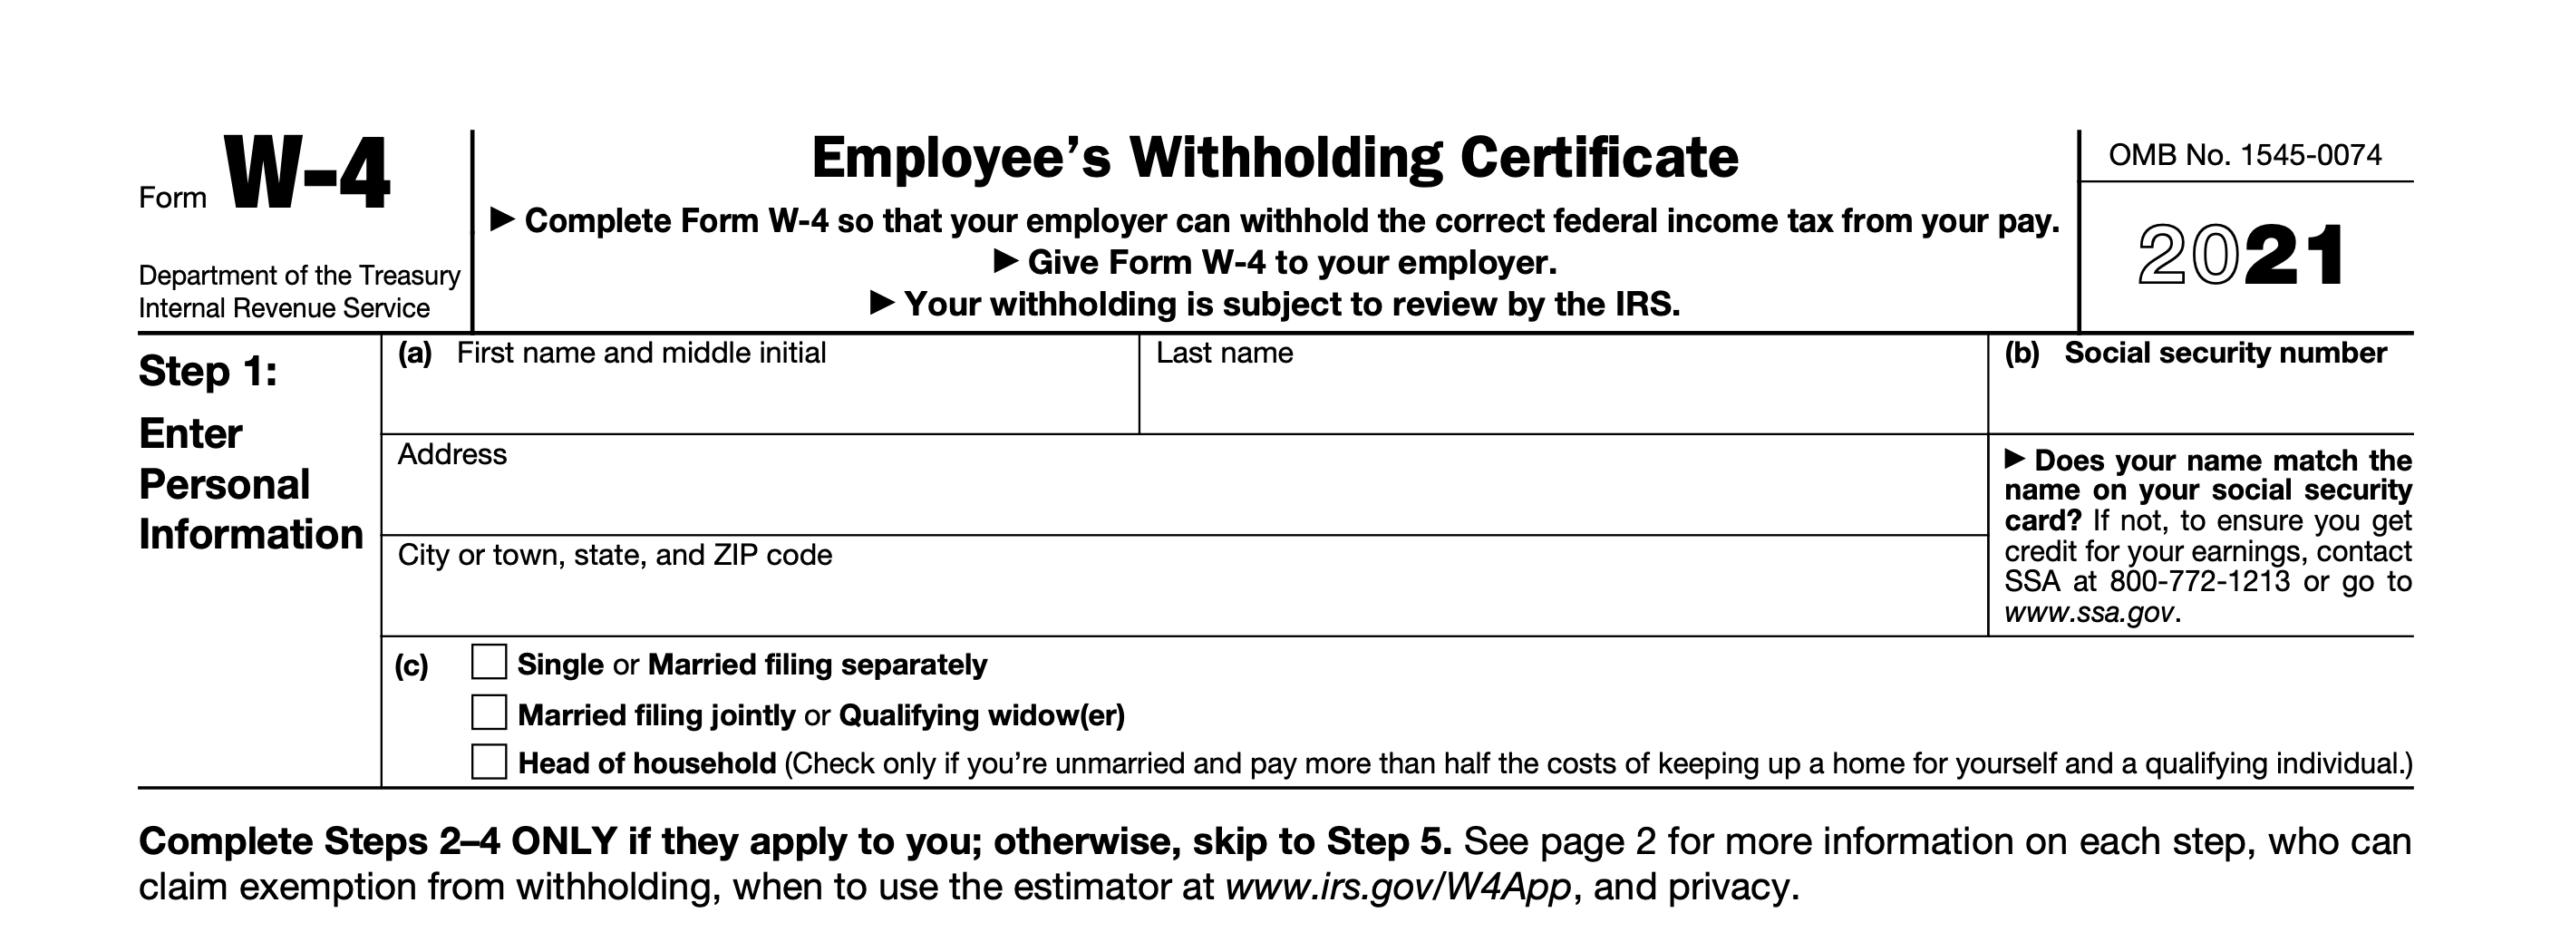 2021 Irs Form W-4: Simple Instructions + Pdf Download regarding 2021 W-4 Form Printable